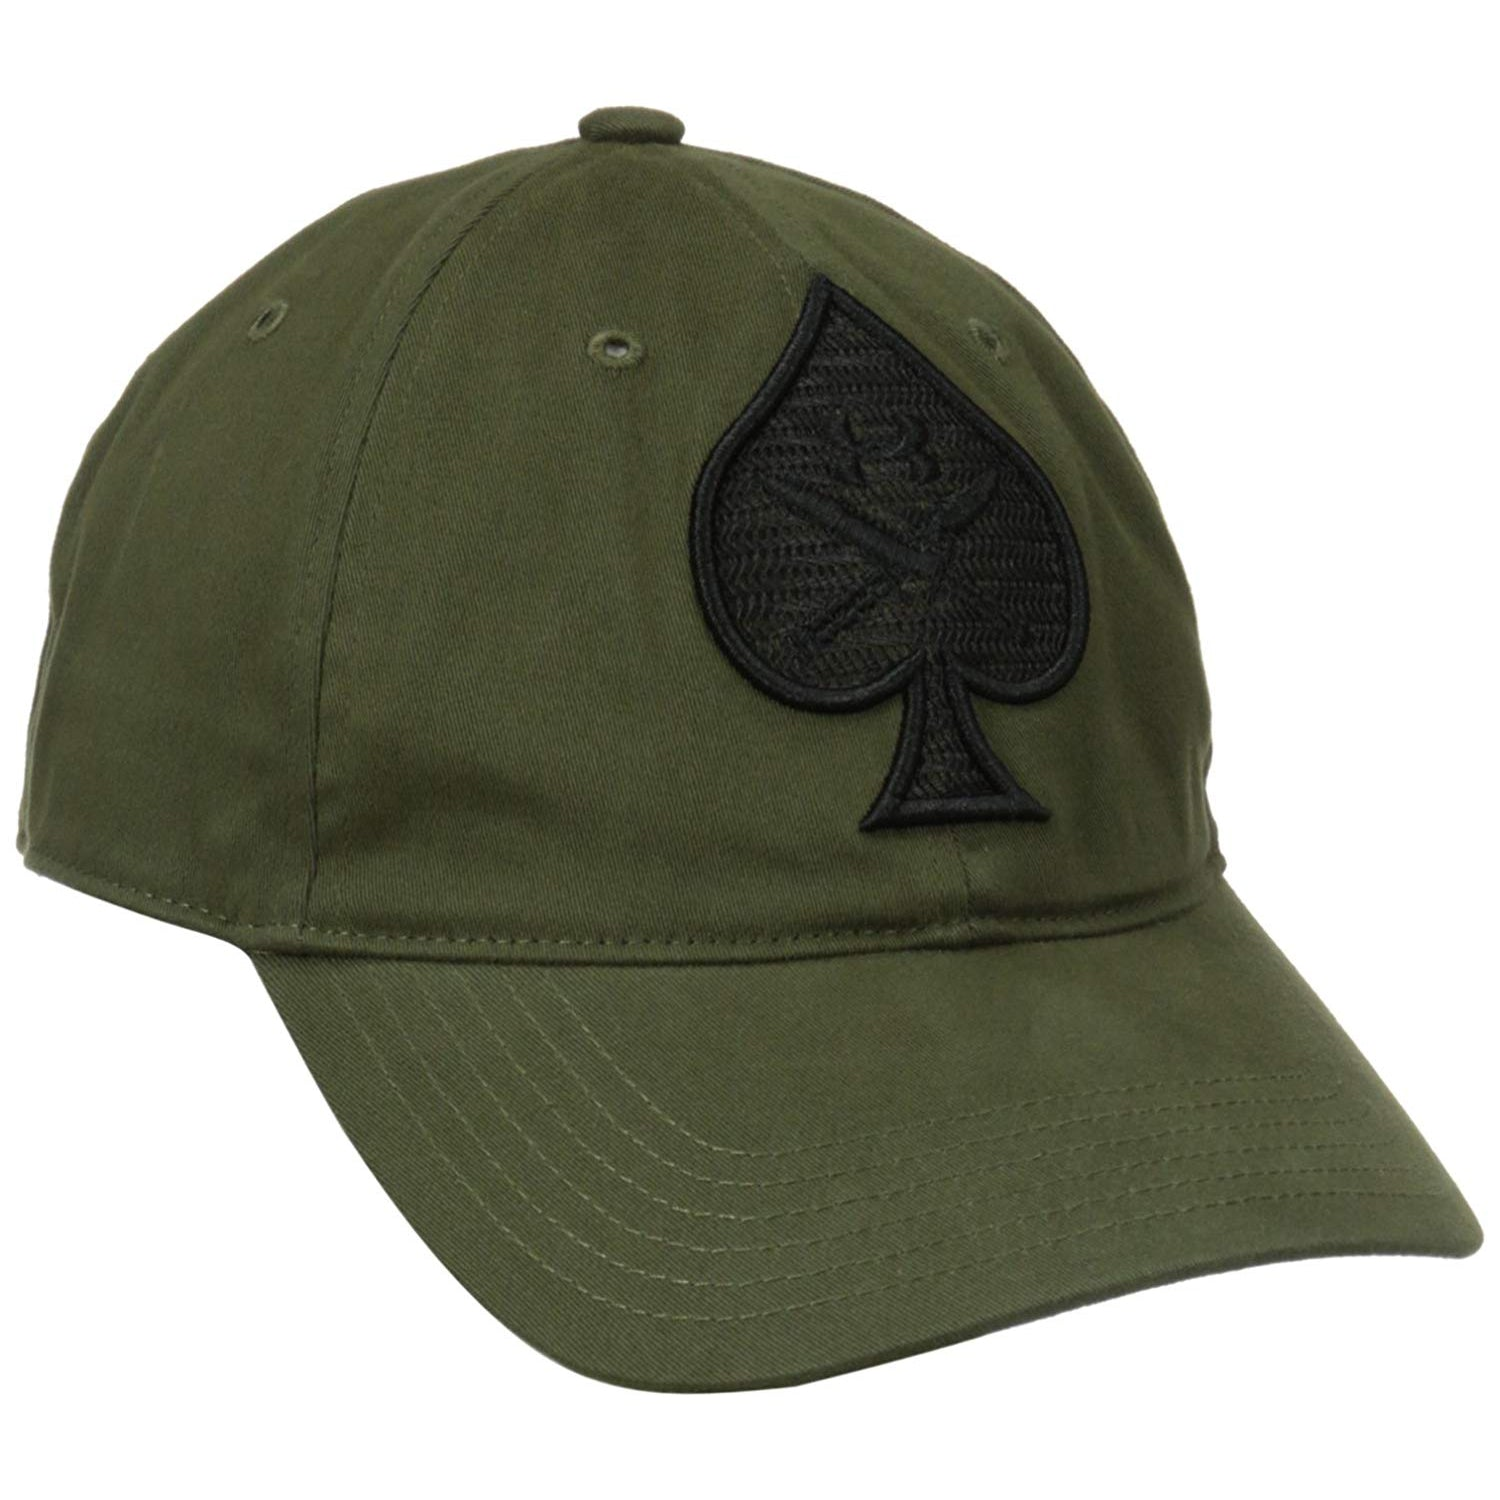 Under Armour Tactical Spade Hat - HYDRA Tactical b80a071ff2e